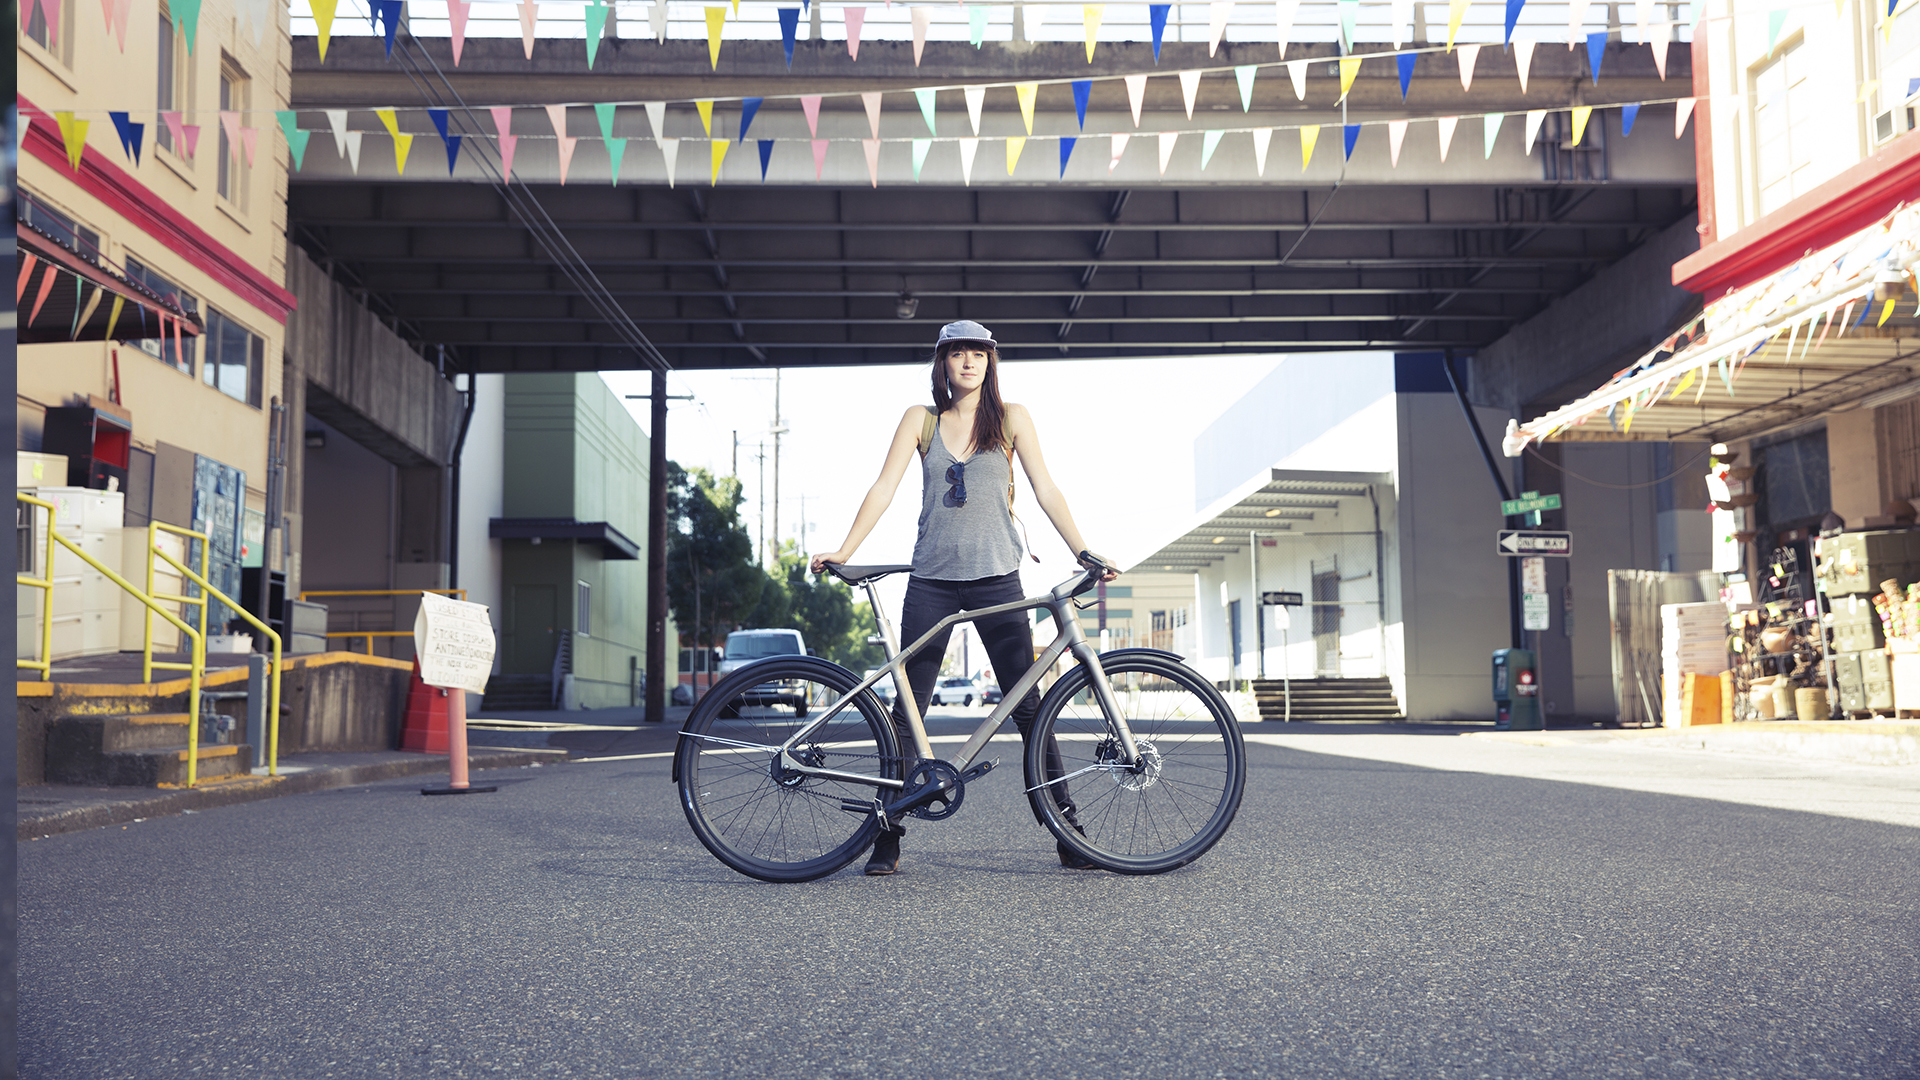 industry-ti-cycles-solid-bike-lifestyle-image-8